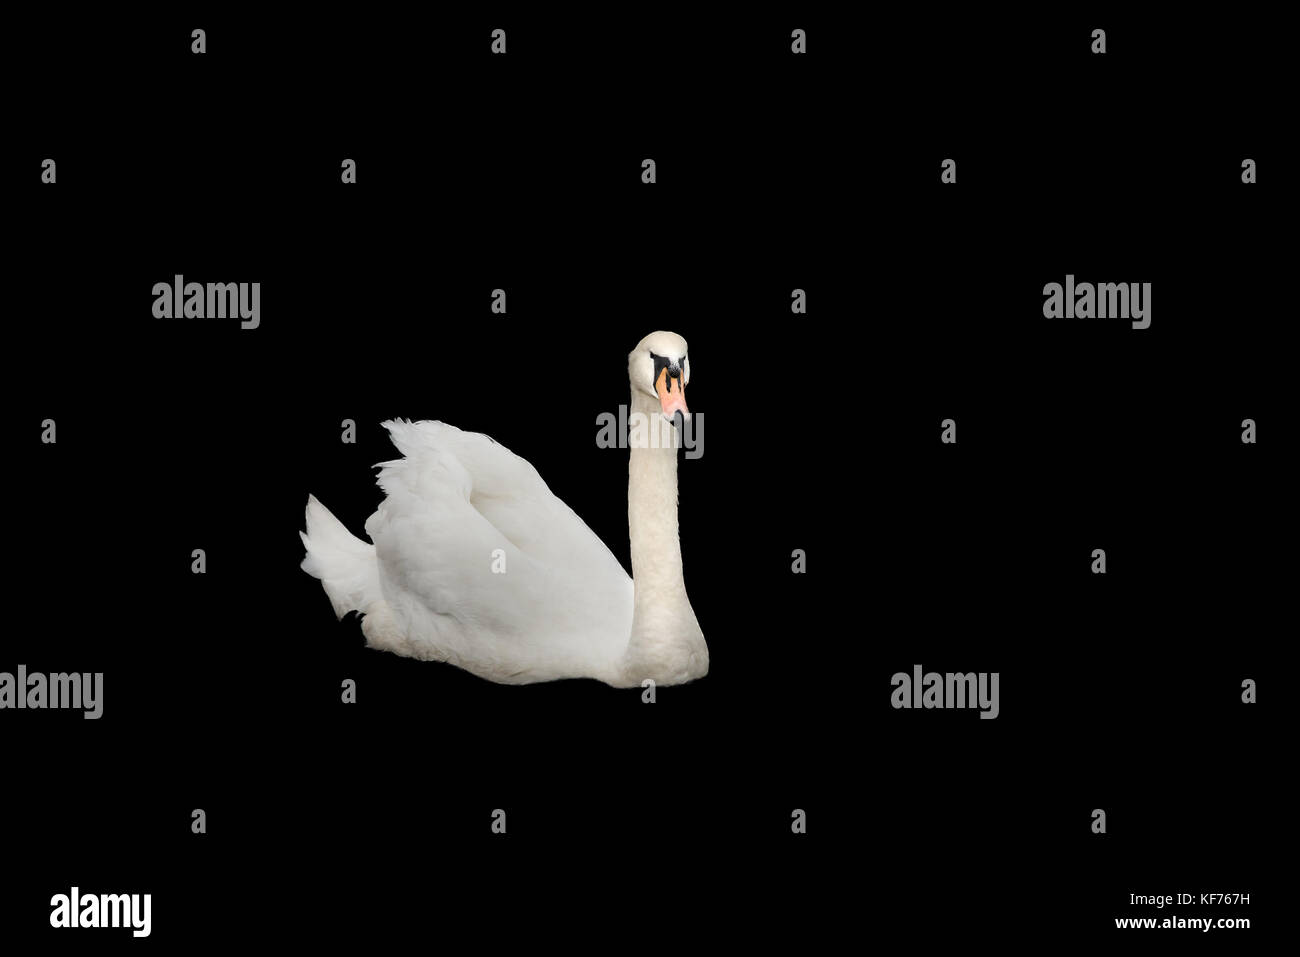 Beautiful White swan Isolated on black back ground with plenty of room for text. - Stock Image